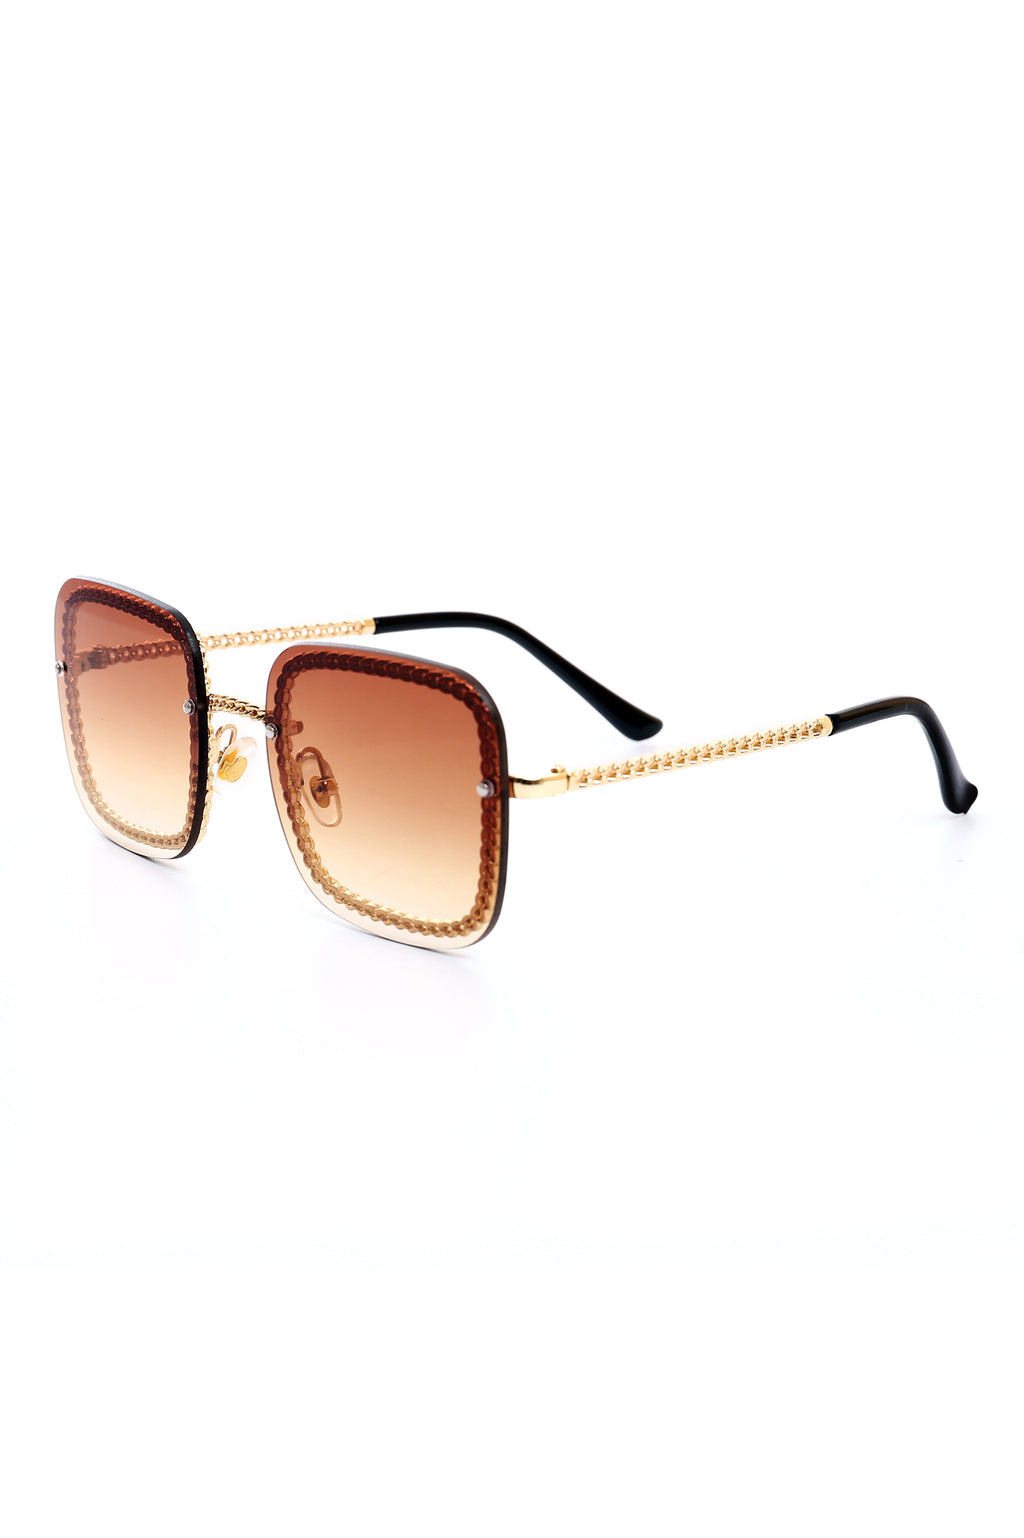 CHAIN RIM SHADES  -COFFEE